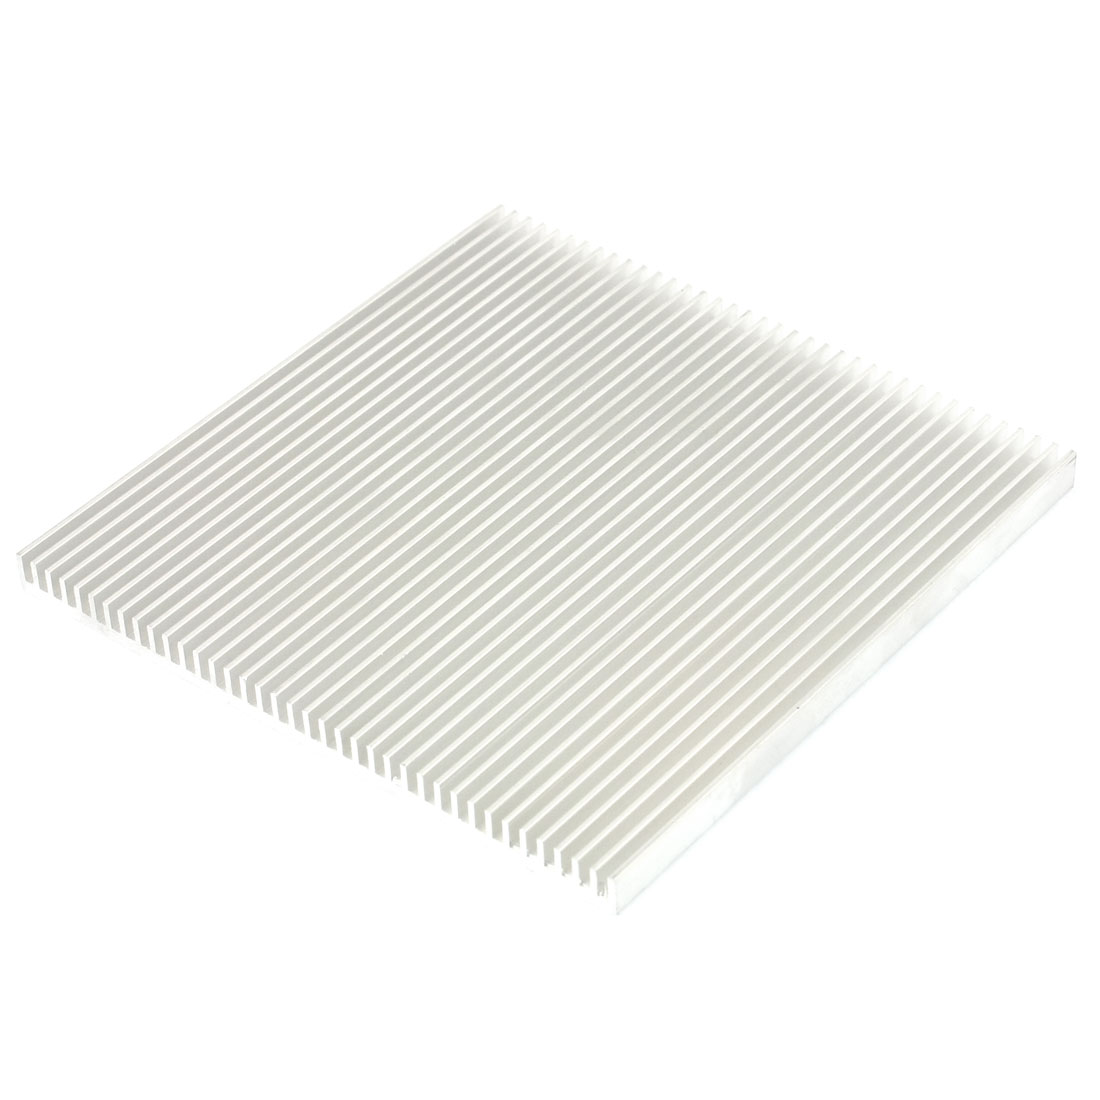 Silver White 126mmx126mmx8mm LED Heat Sink Aluminum Cooling Fin